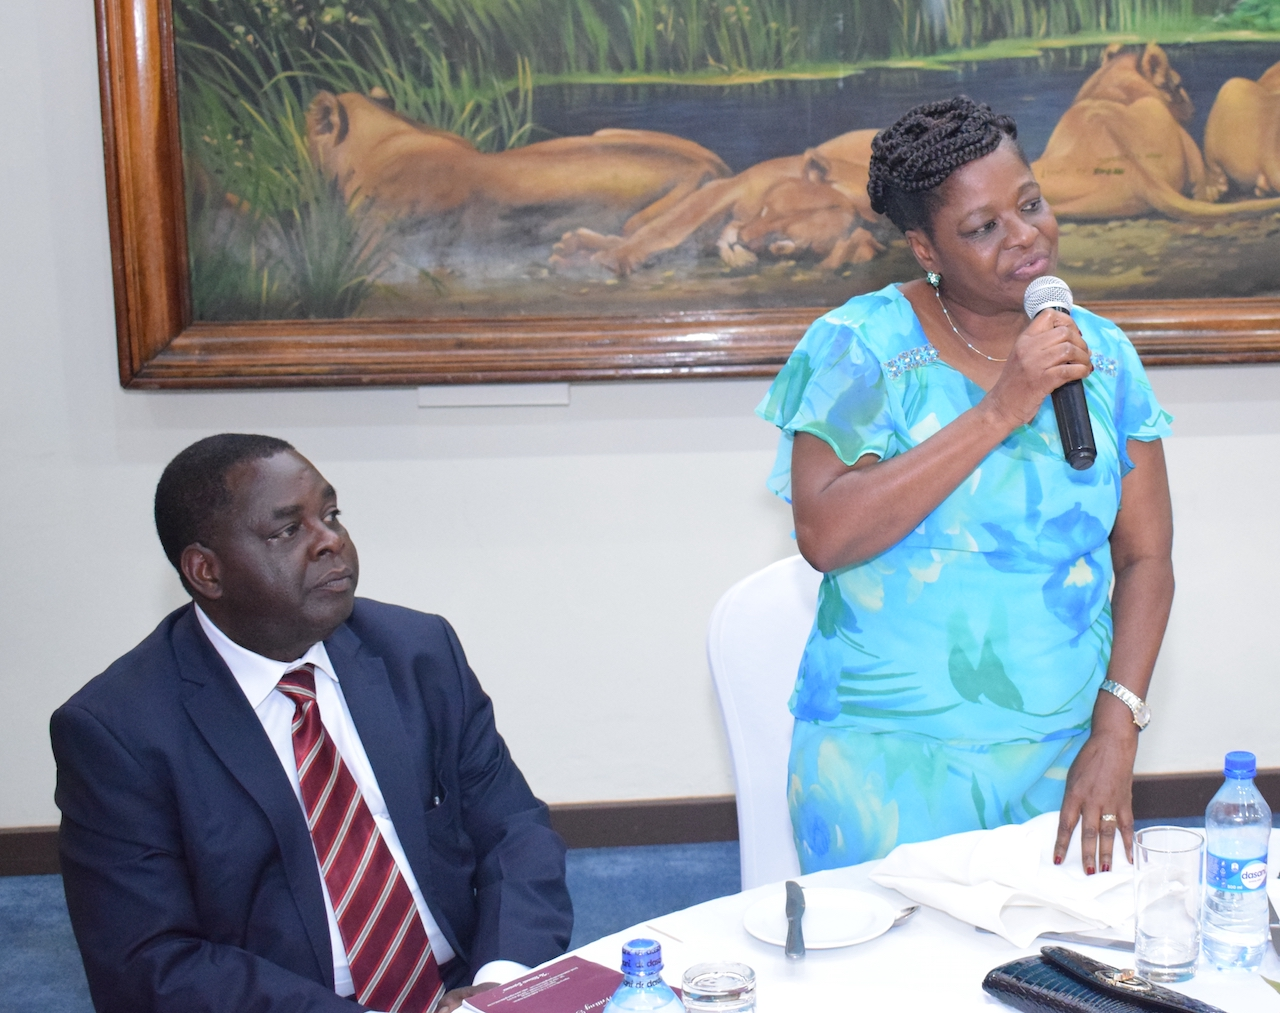 H.E. Nazi Kivutha, Makueni County's First Lady and Chair of the County First Ladies Association speaks at the event as Dr. Stewart Kabaka, Deputy Head, Neonatal, Child and Adolescent Health Unit, MOH – Kenya listen